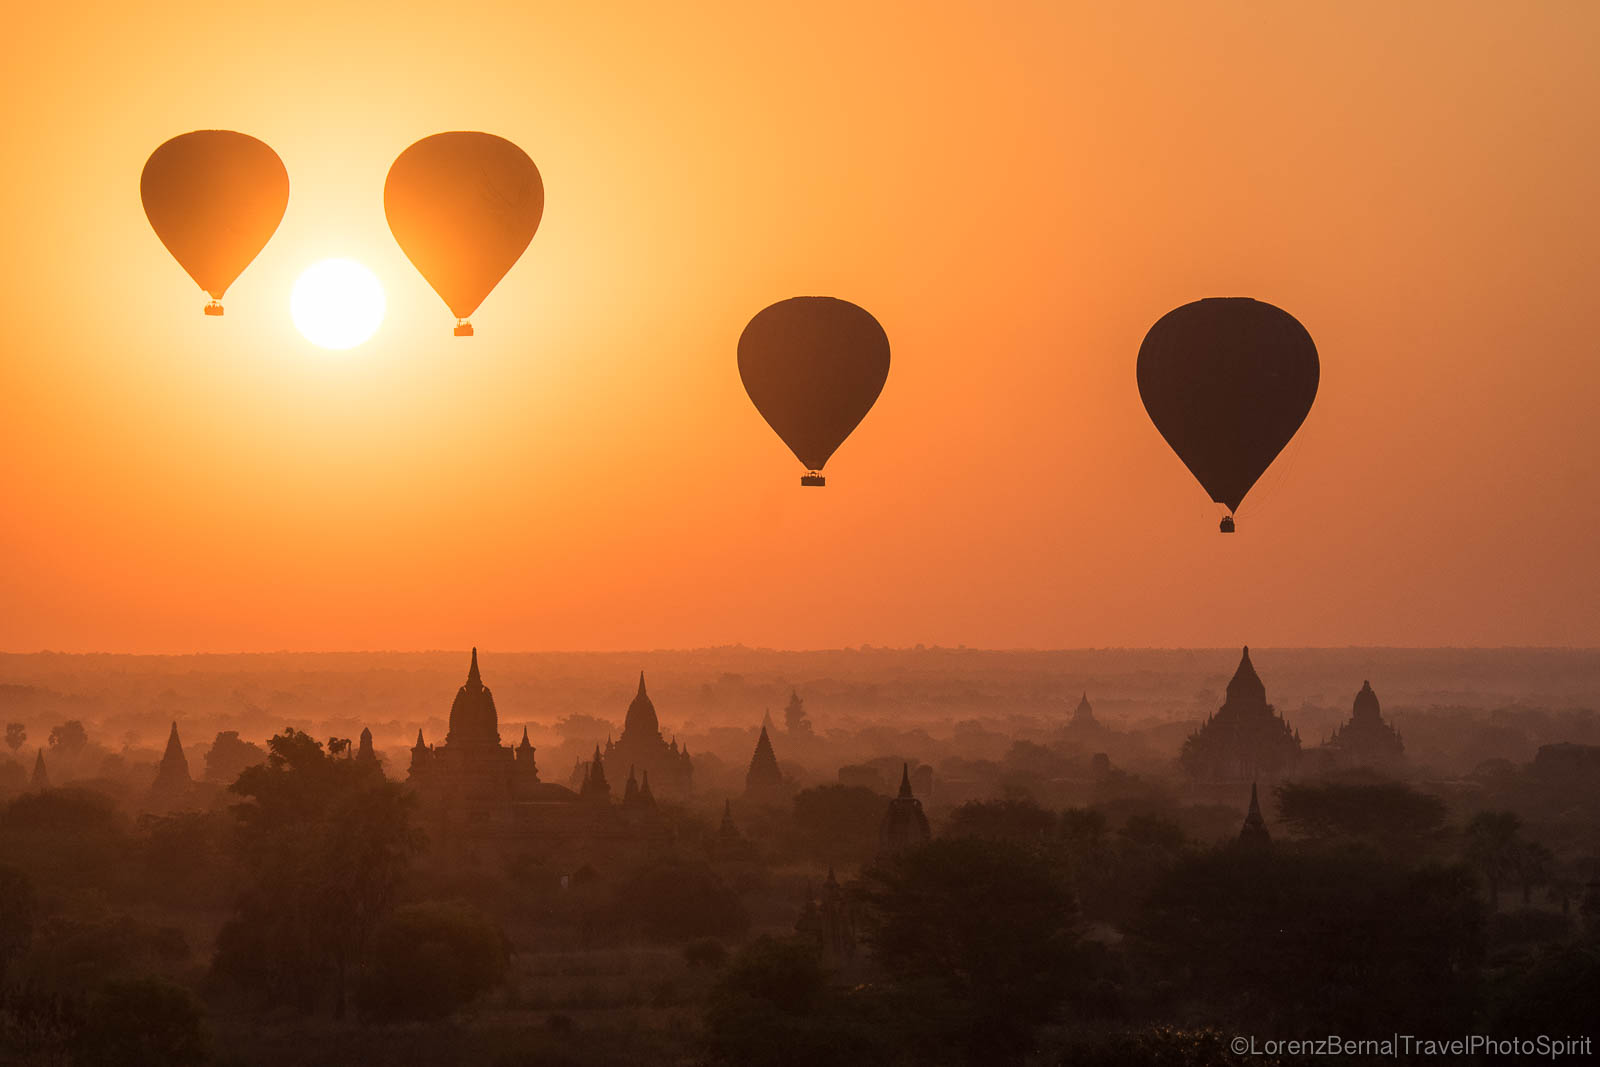 Air Baloons at sunrise over Bagan temple area - A Lorenz Berna Travel Photography of Myanmar